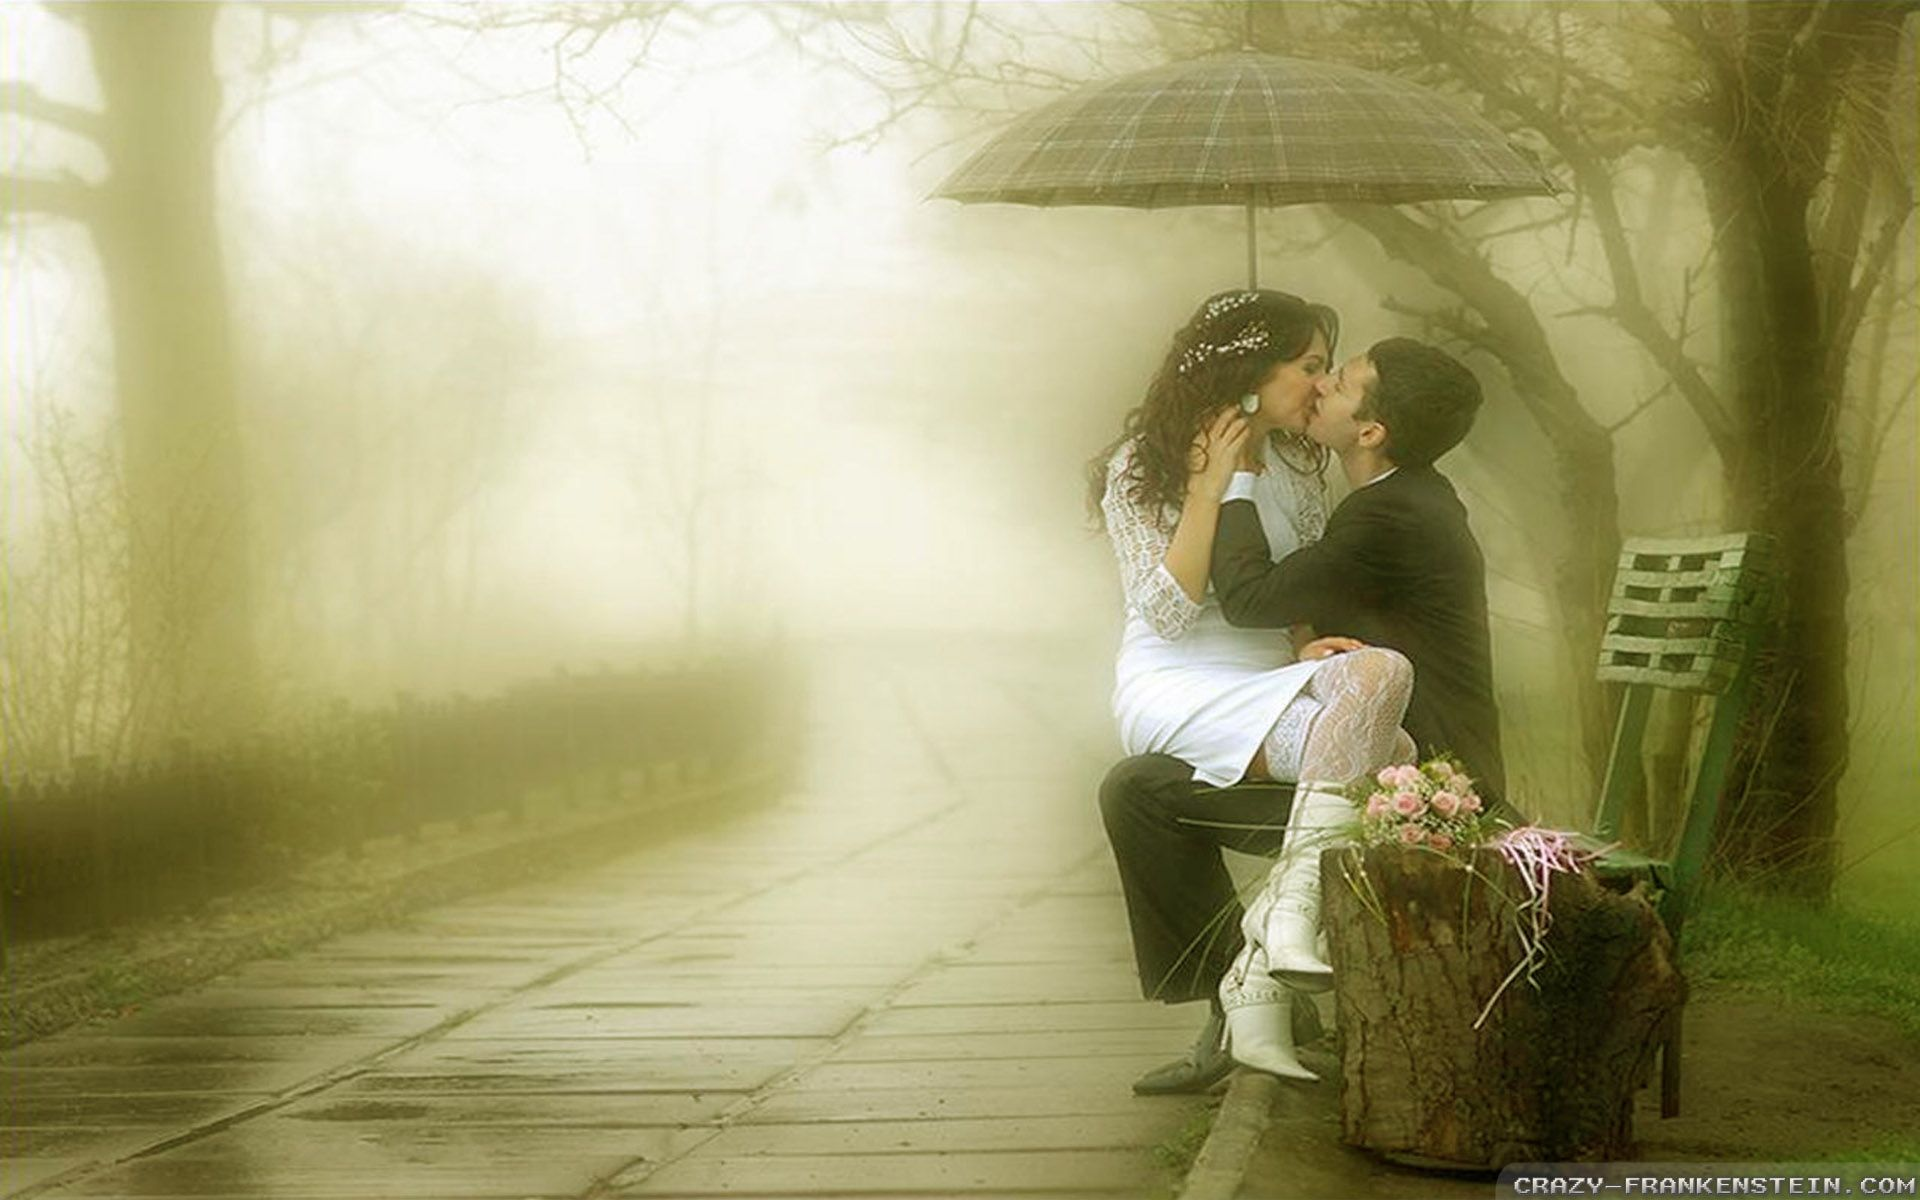 Romantic couple wallpapers hd love couple images 1920 1200 romantic pic wallpapers 37 wallpapers